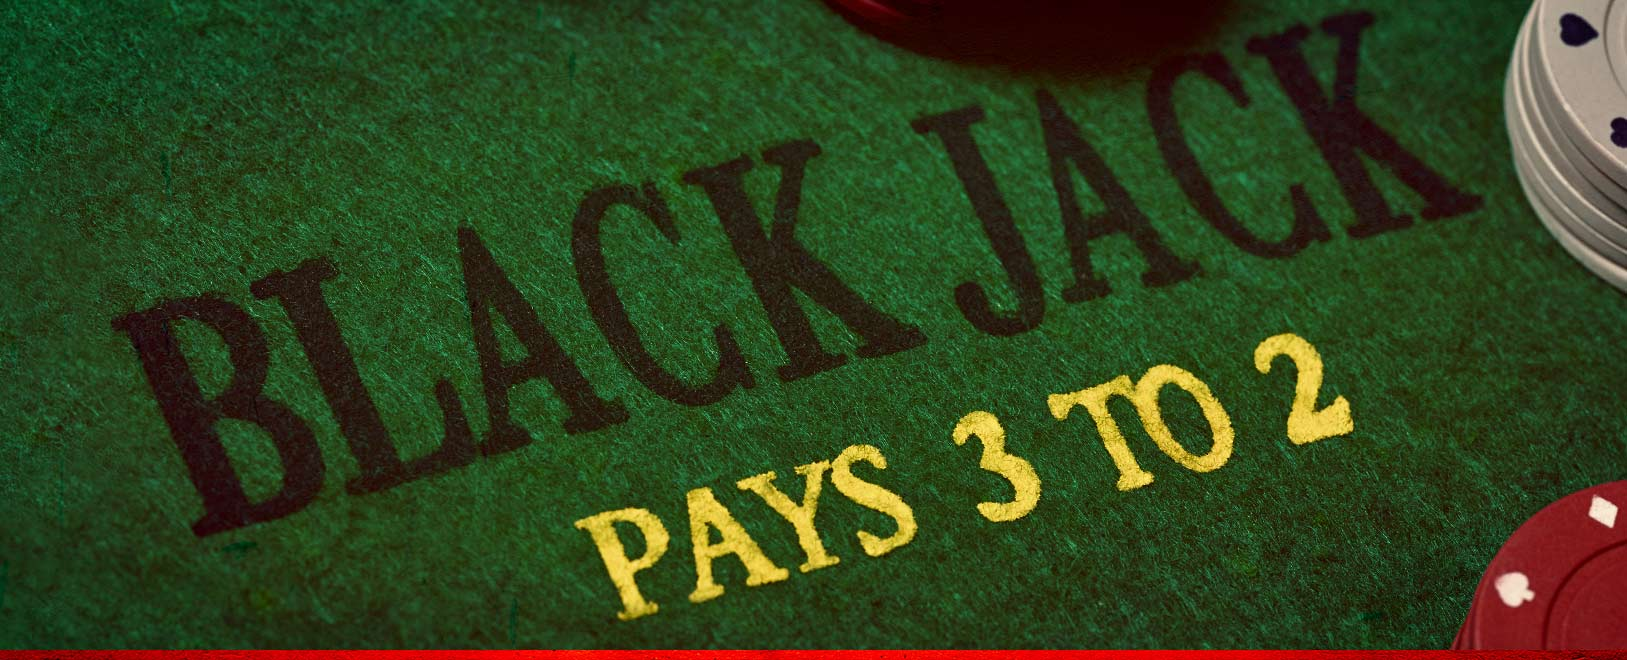 Basic Blackjack Rules